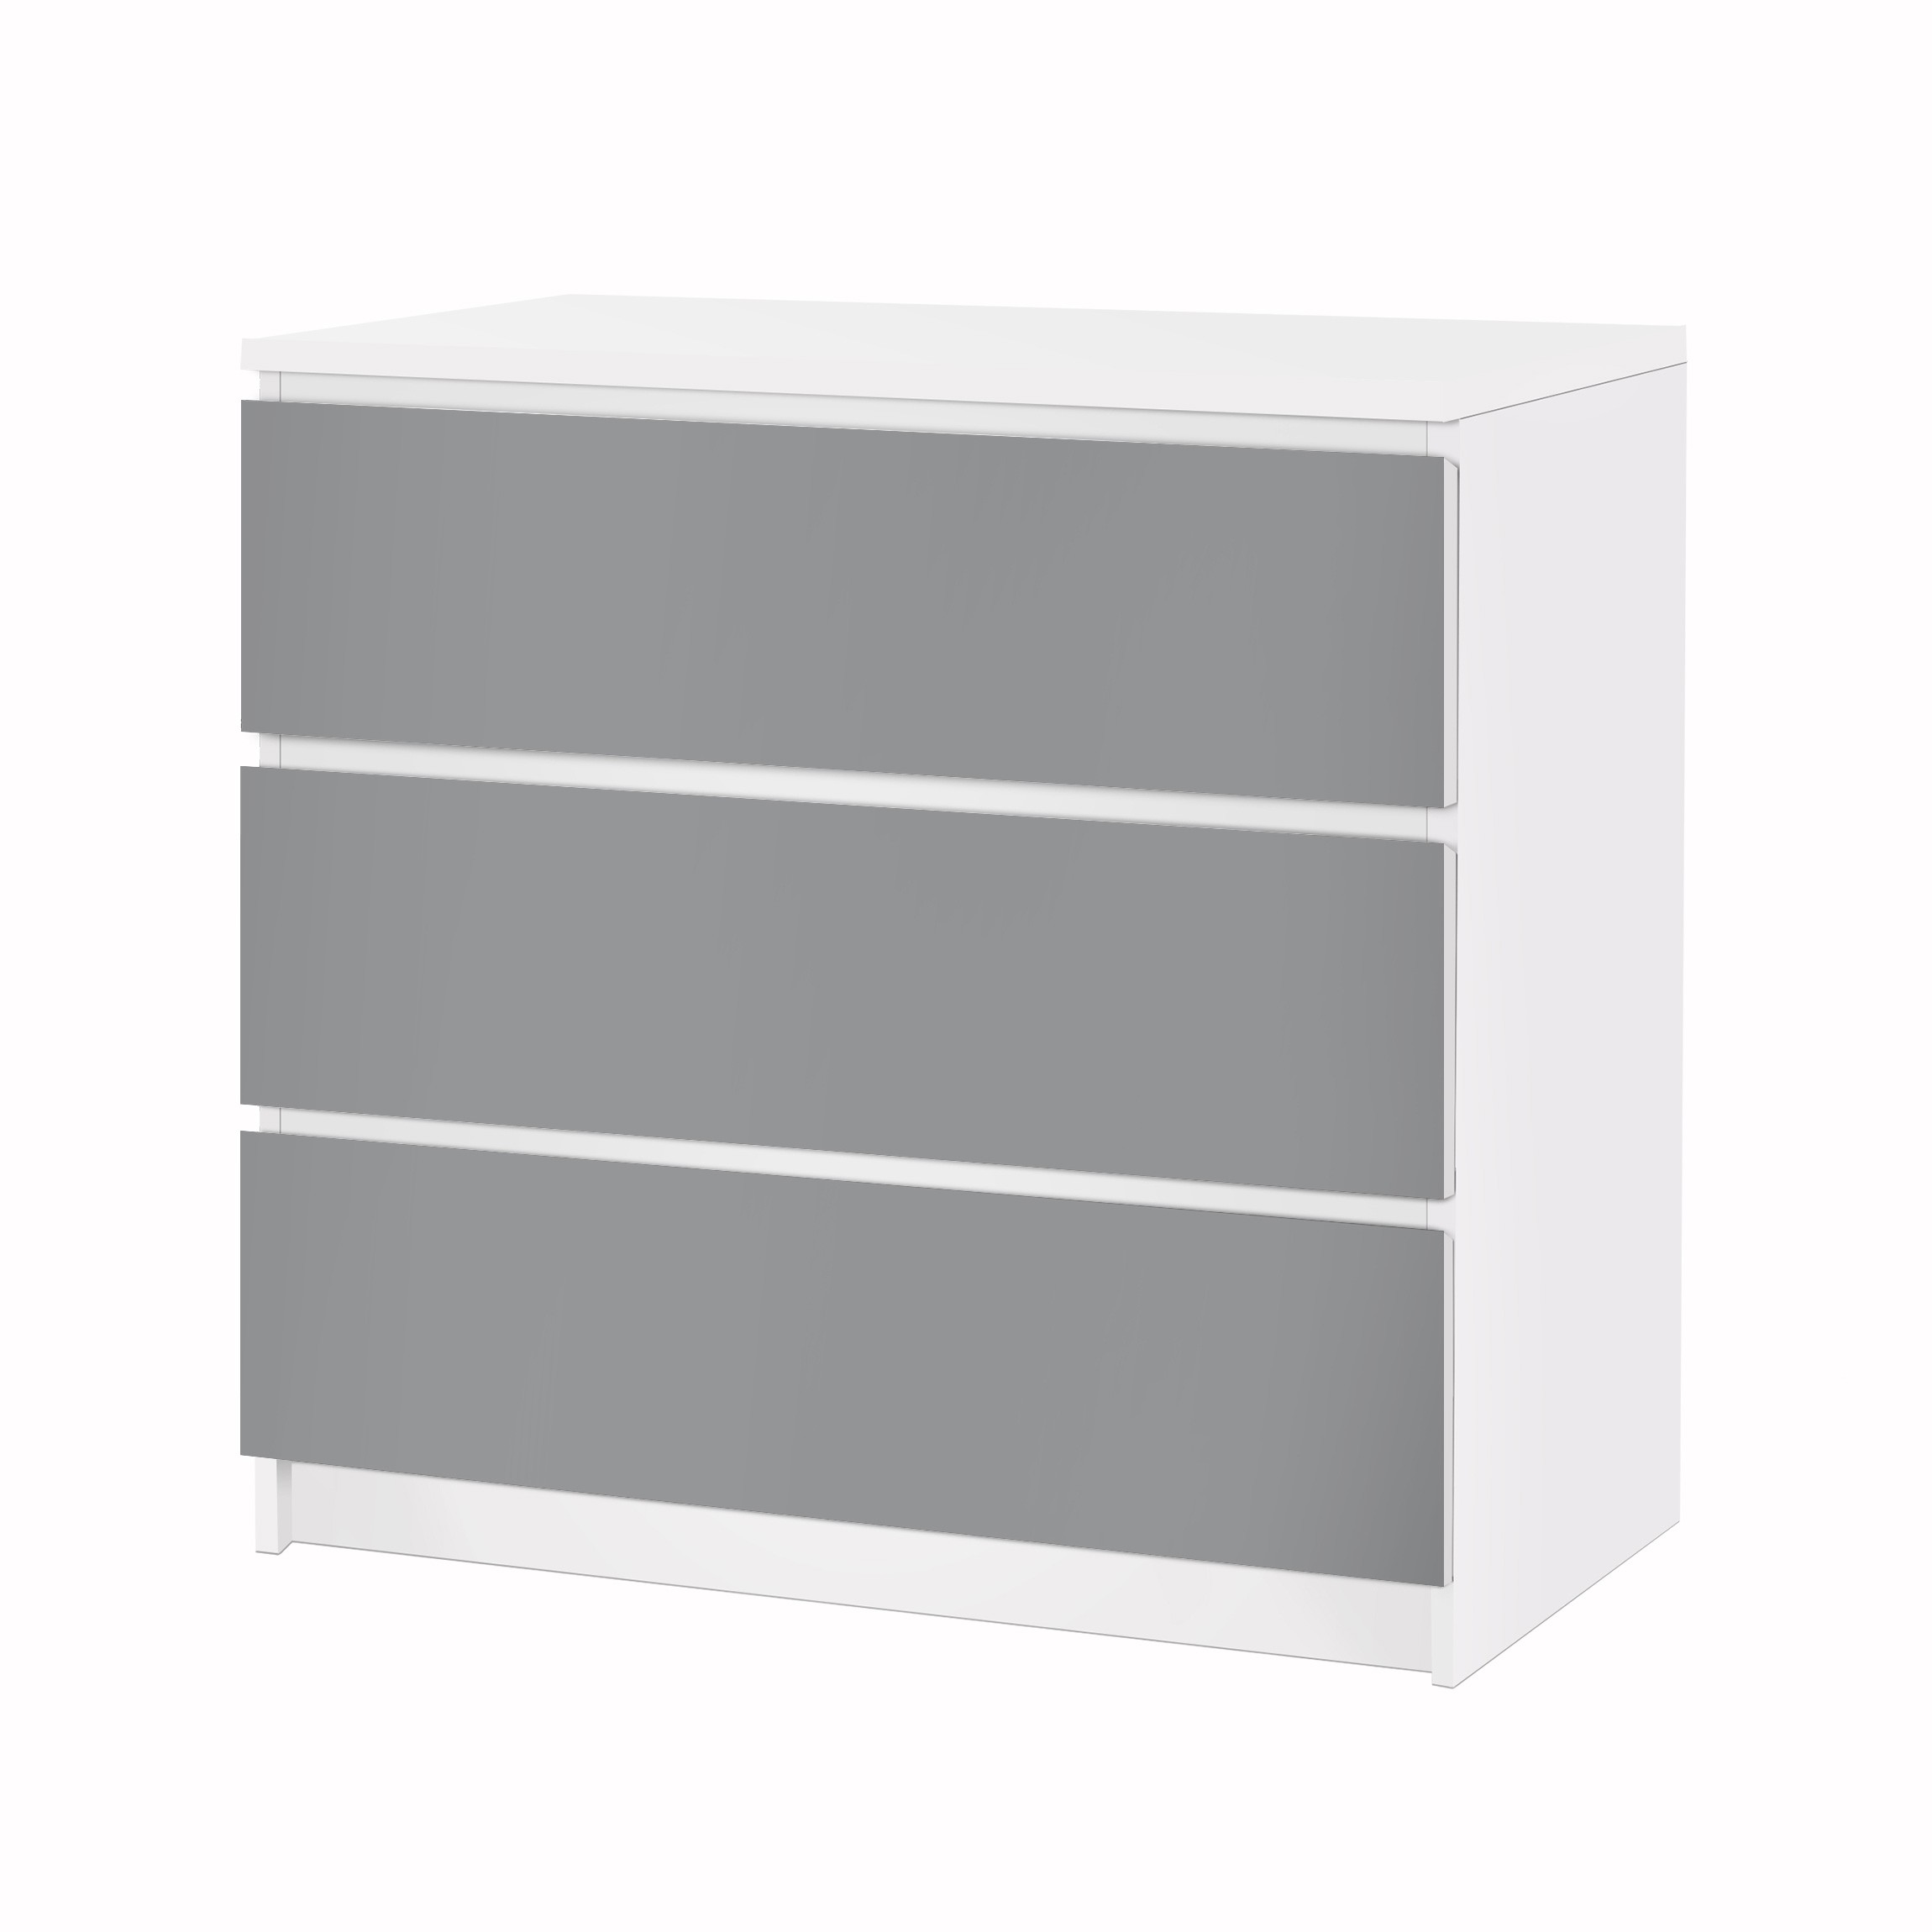 m belfolie f r ikea malm kommode klebefolie colour cool grey. Black Bedroom Furniture Sets. Home Design Ideas